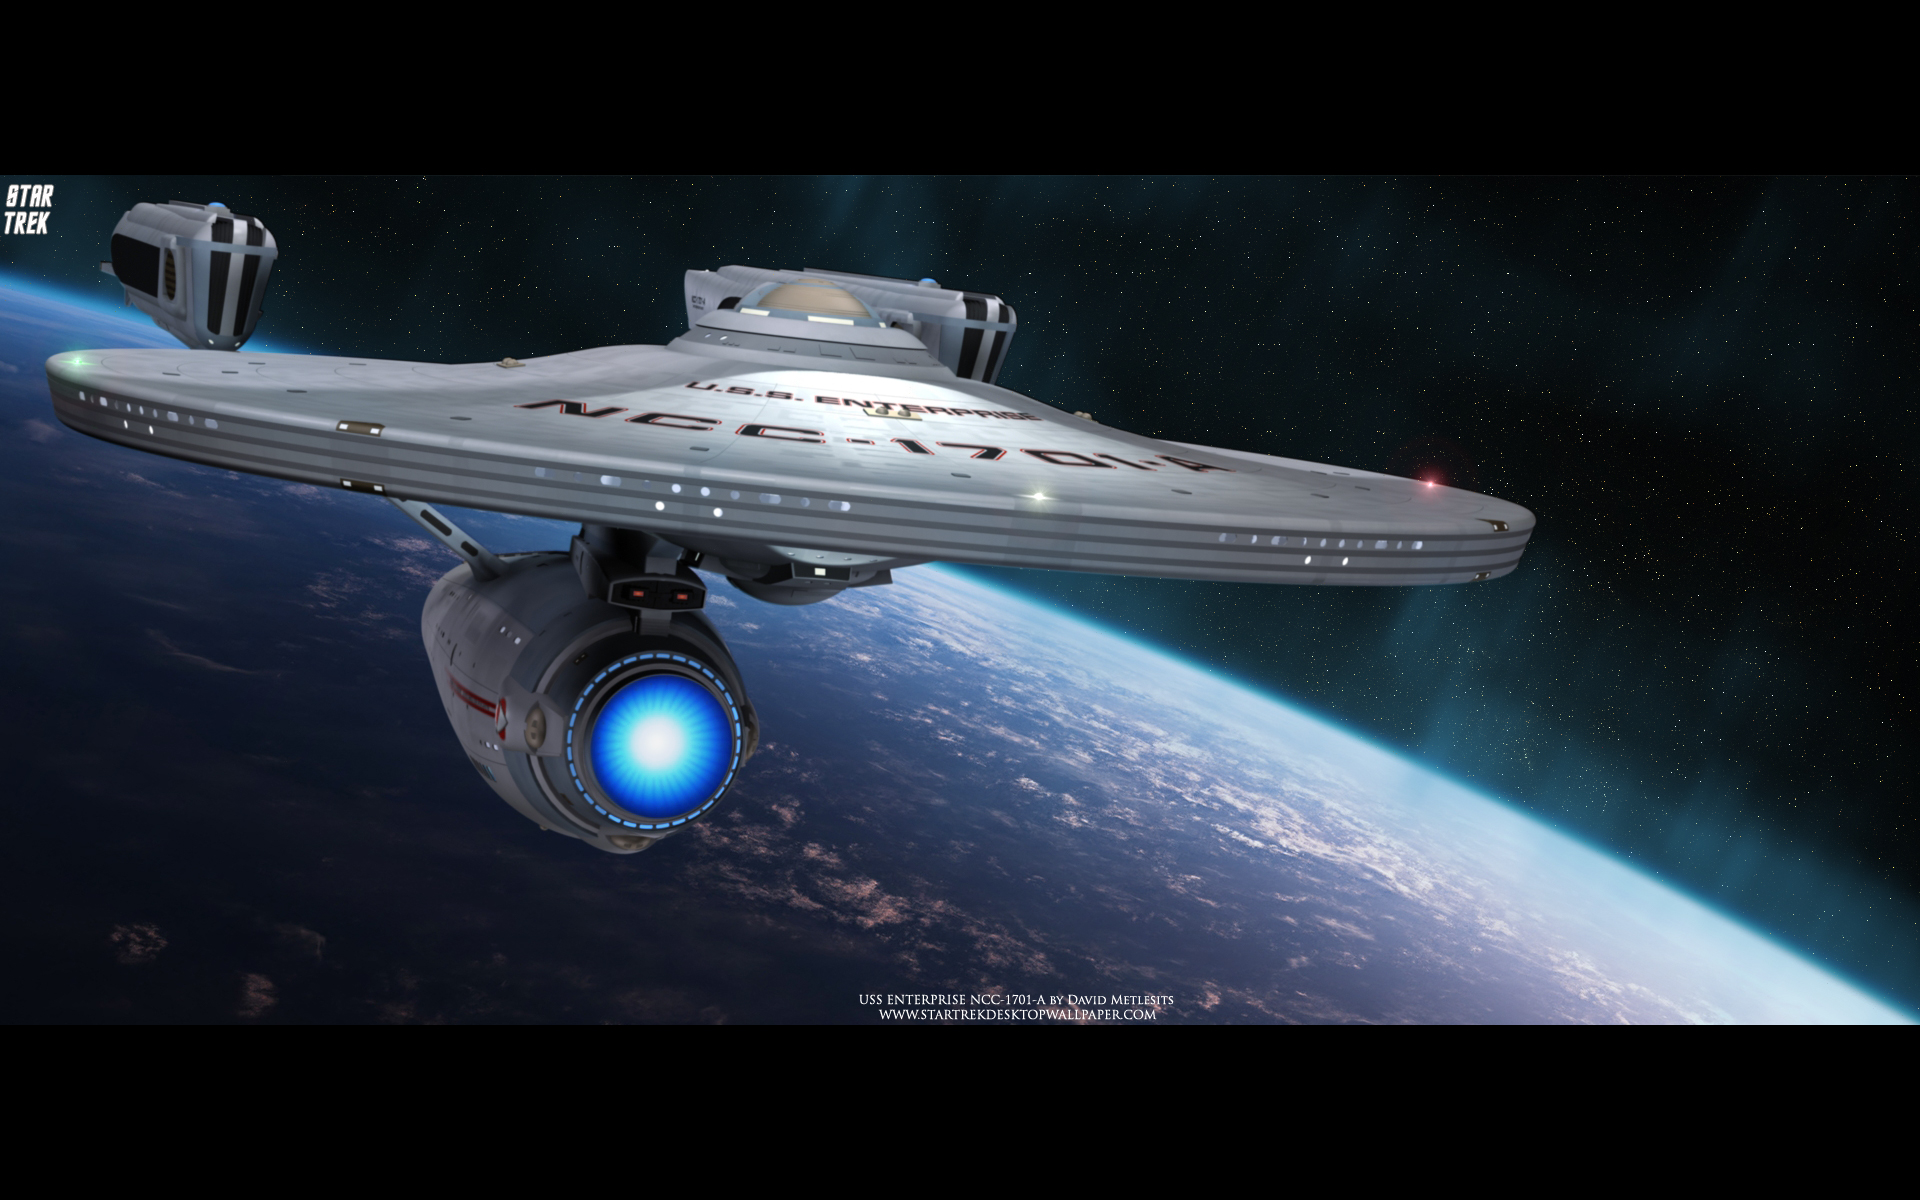 48] USS Enterprise NCC 1701 Wallpaper on WallpaperSafari 1920x1200